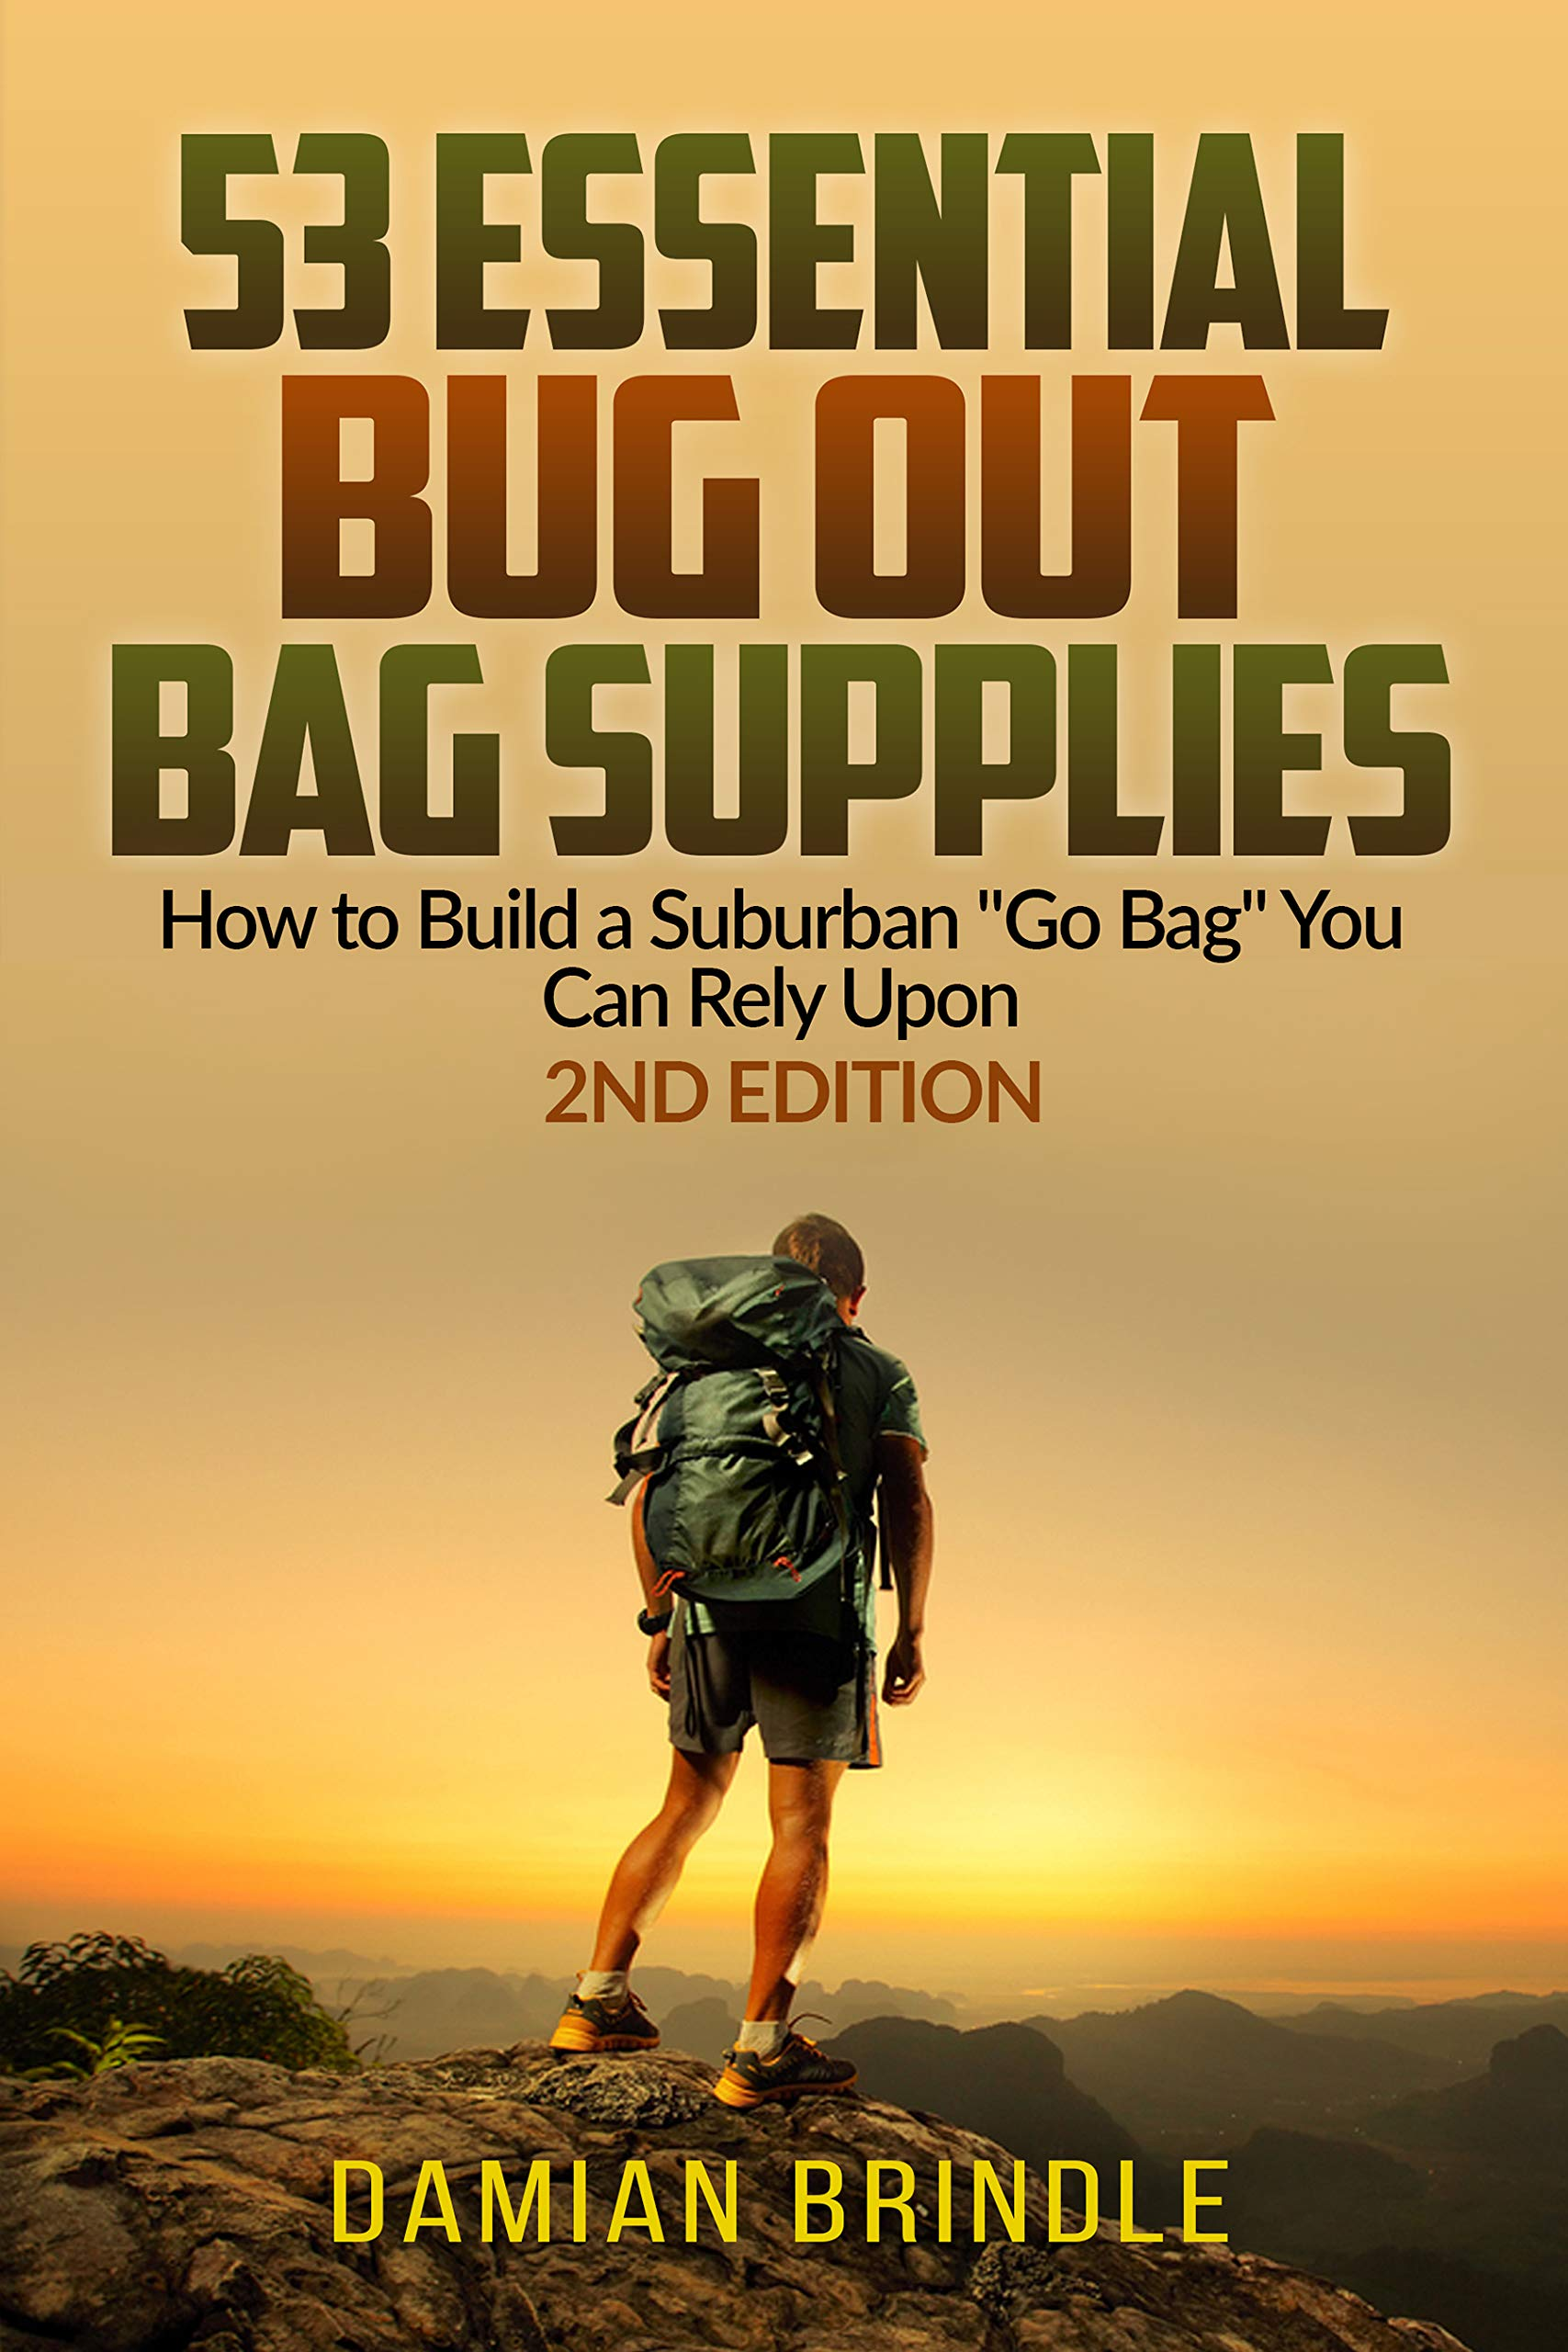 "53 Essential Bug Out Bag Supplies: How to Build a Suburban ""Go Bag"" You Can Rely Upon"